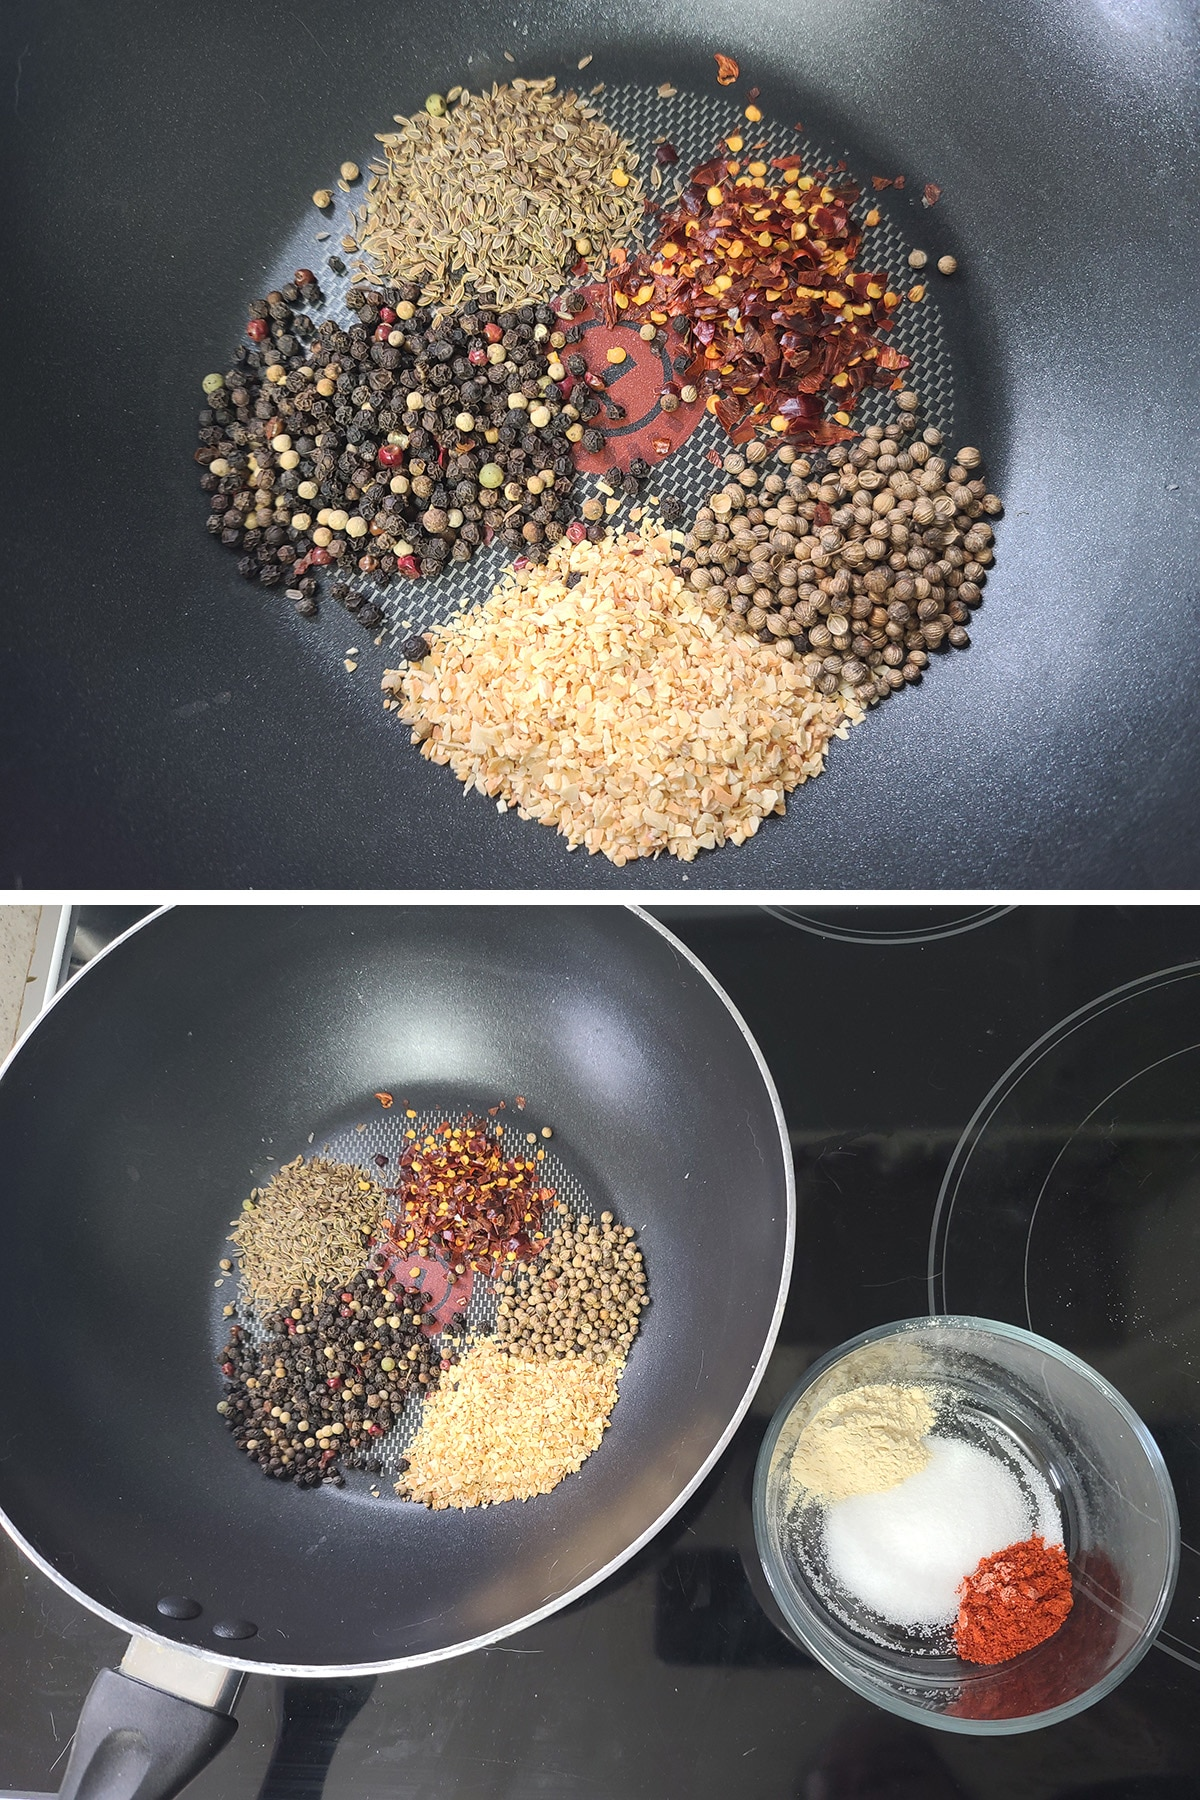 A two part compilation image showing spices measured into a pan, and that pan next to a small bowl of powdered spices.